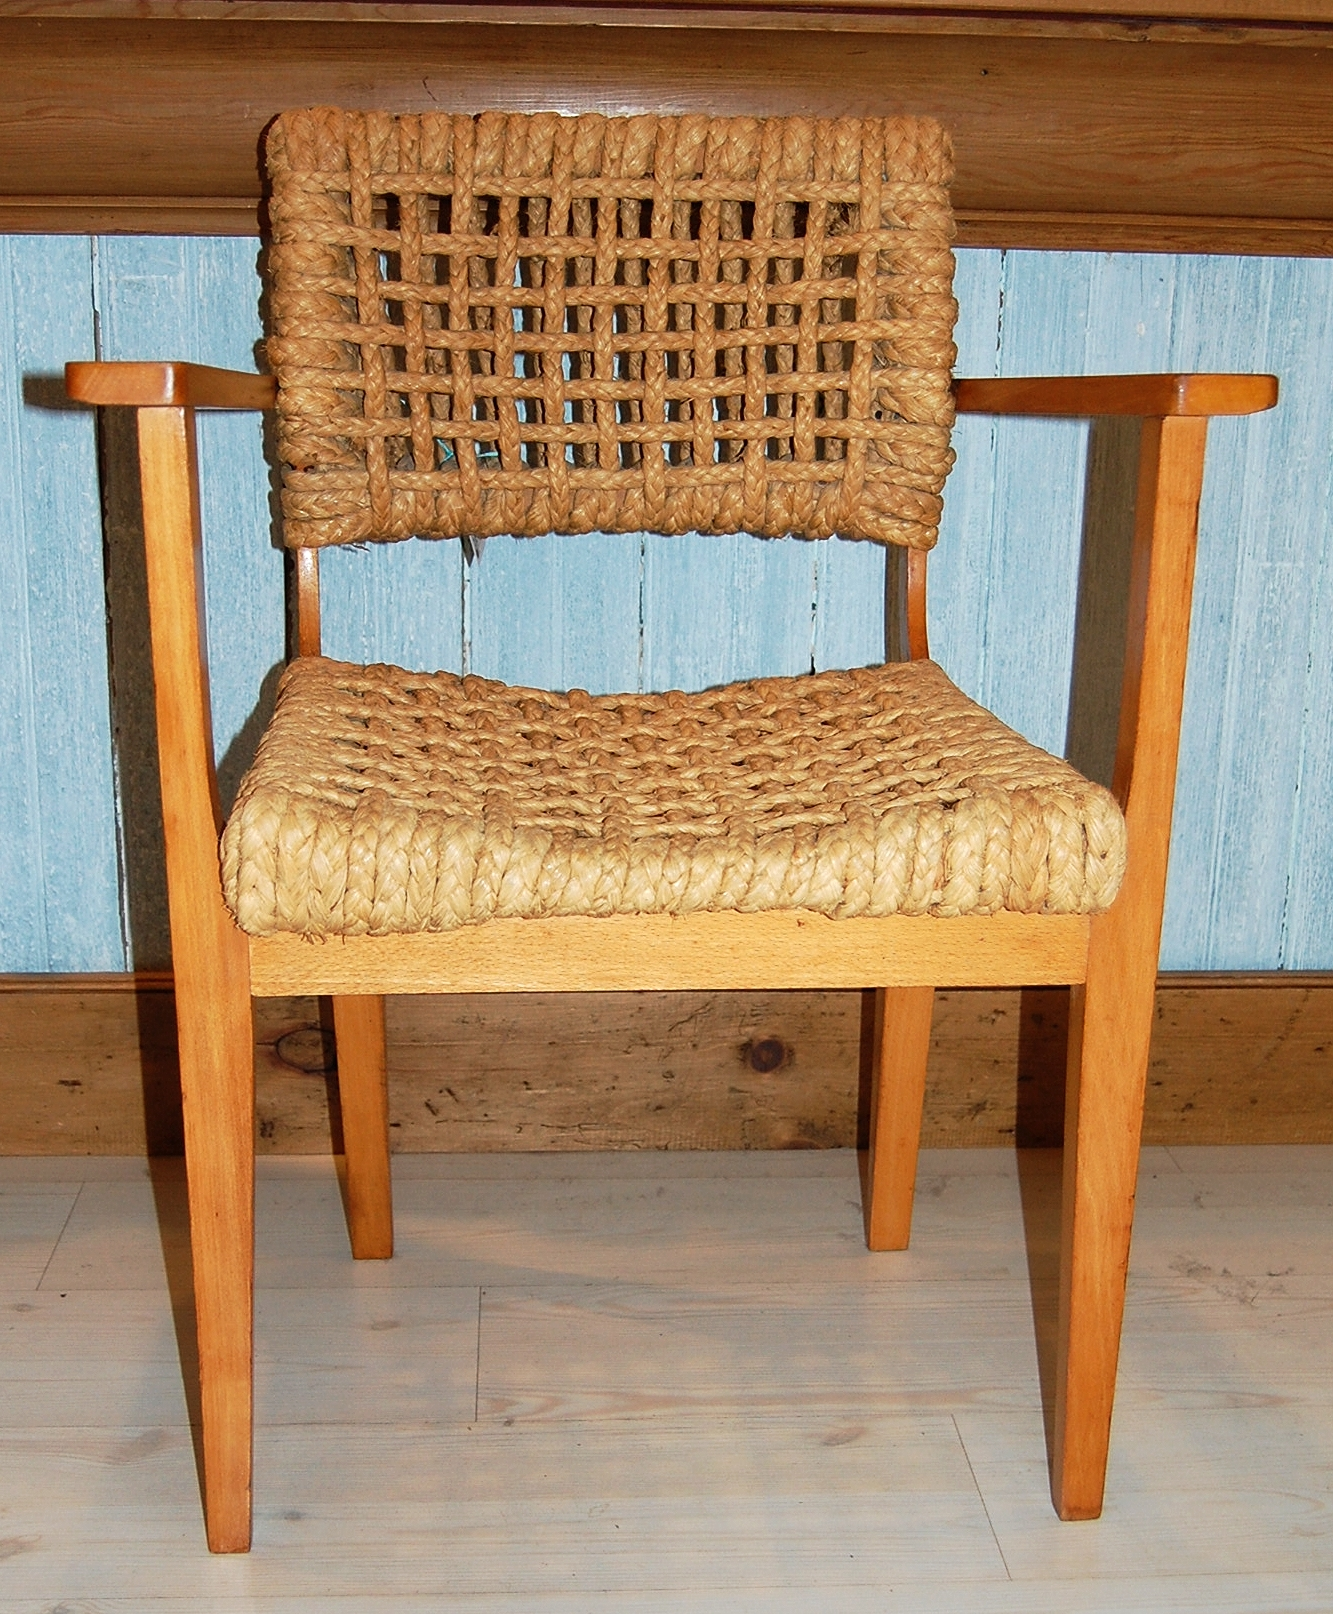 Vintage Rope Chair